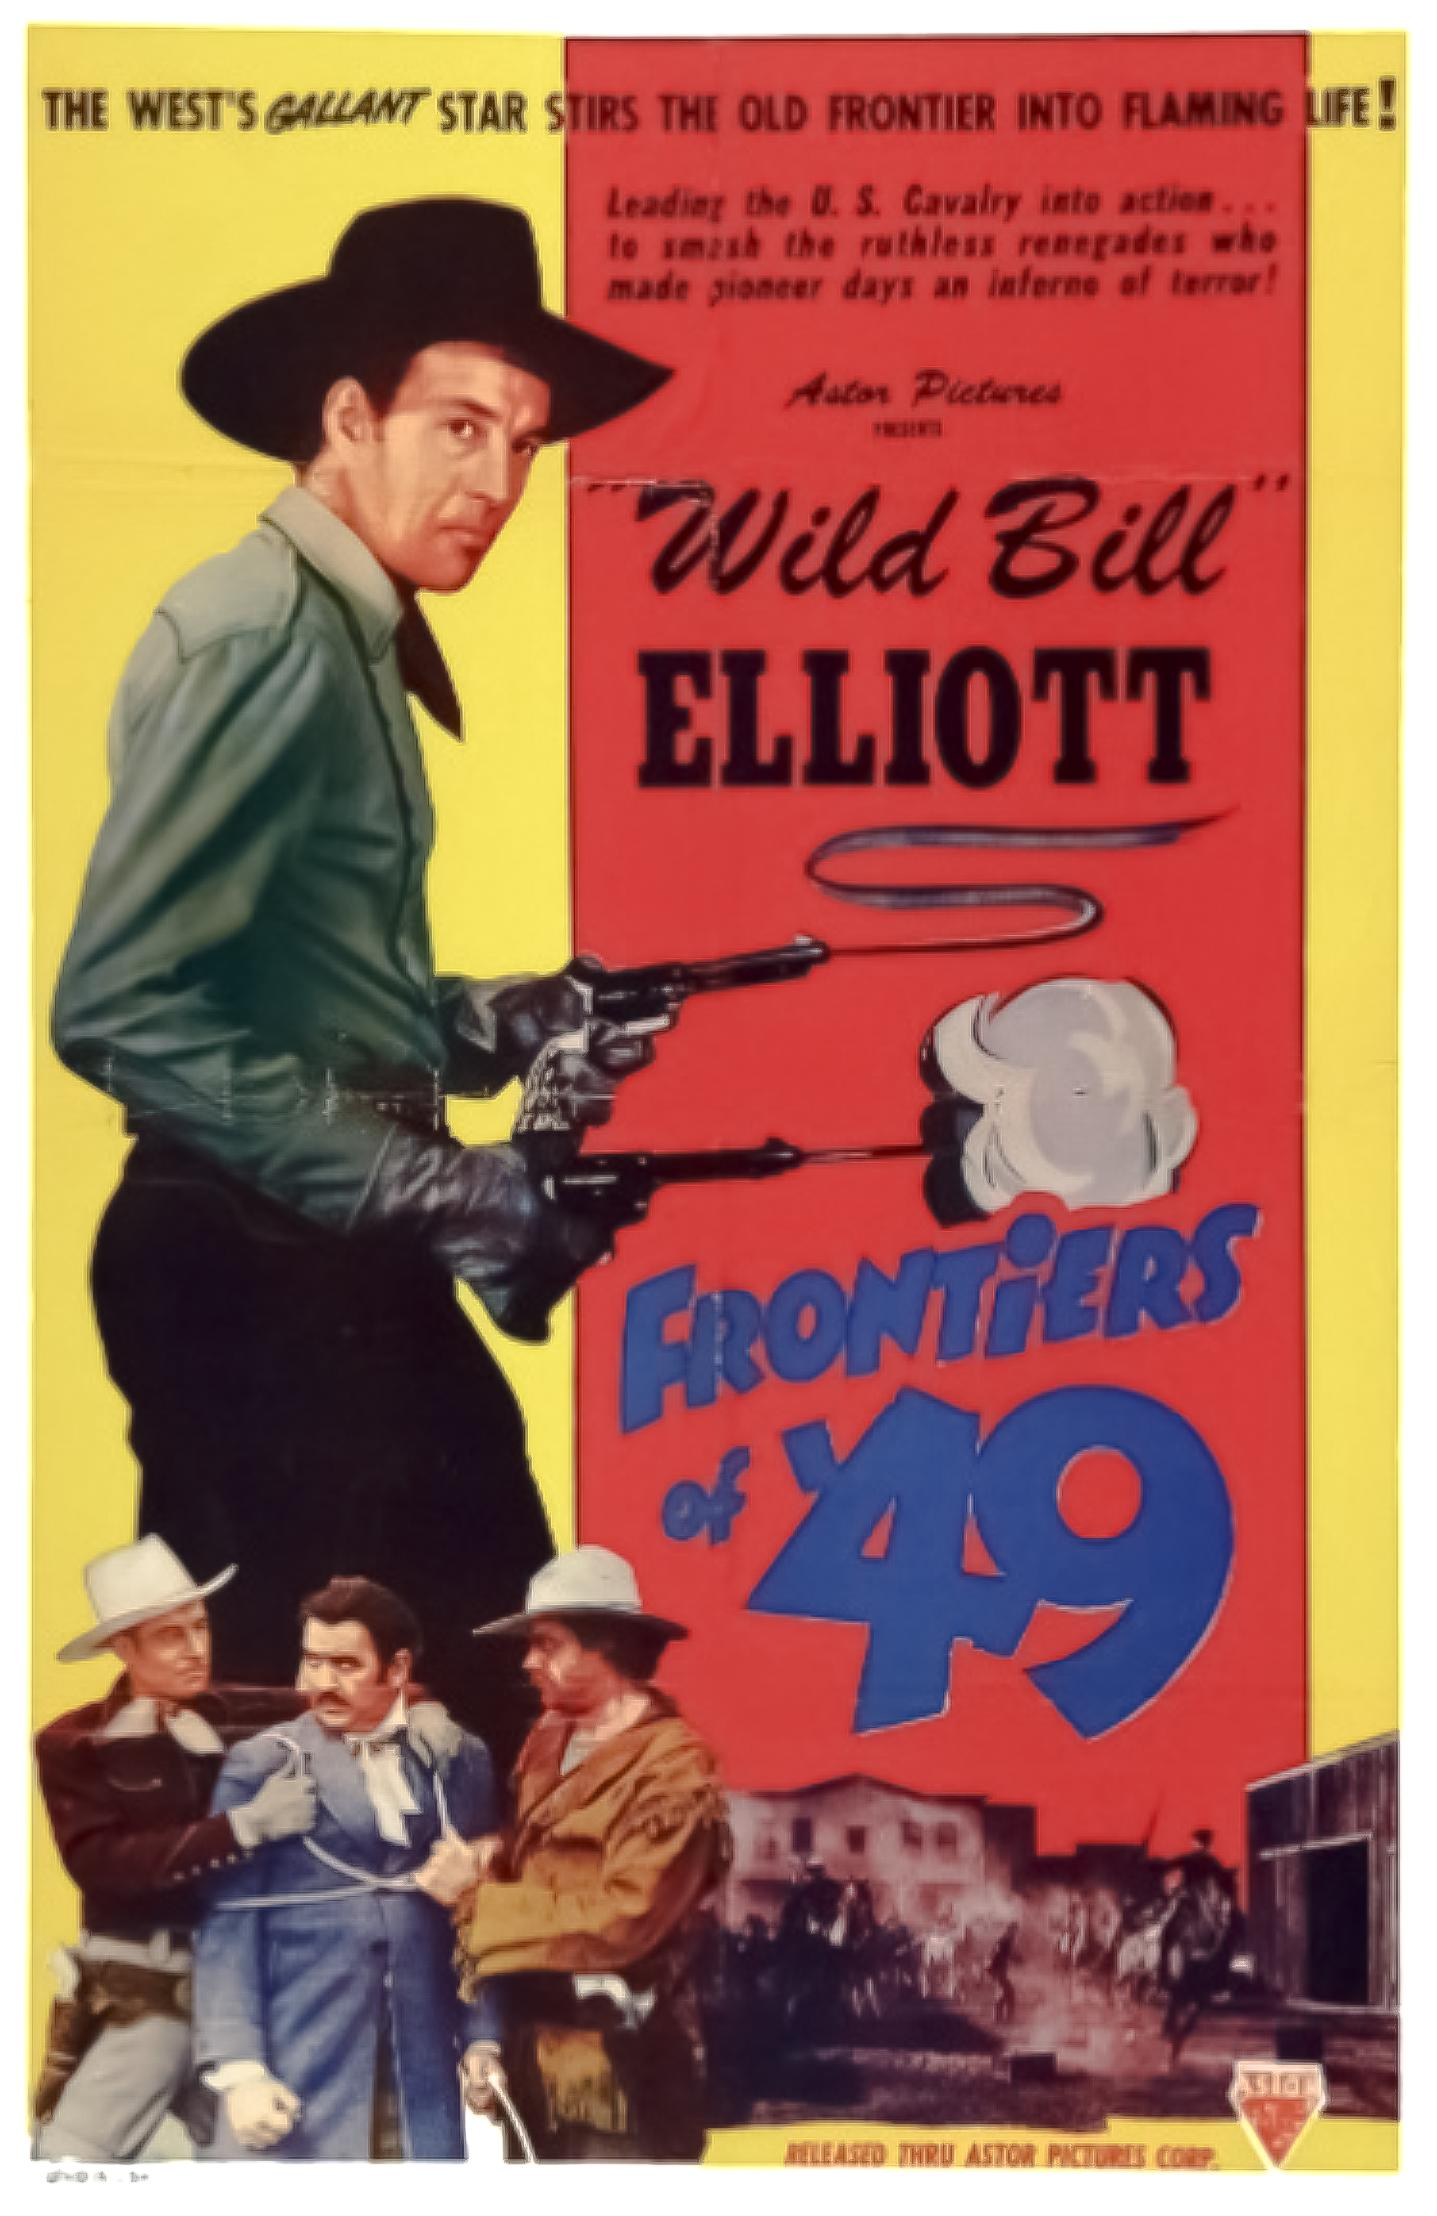 Bill Elliott in Frontiers of '49 (1939)